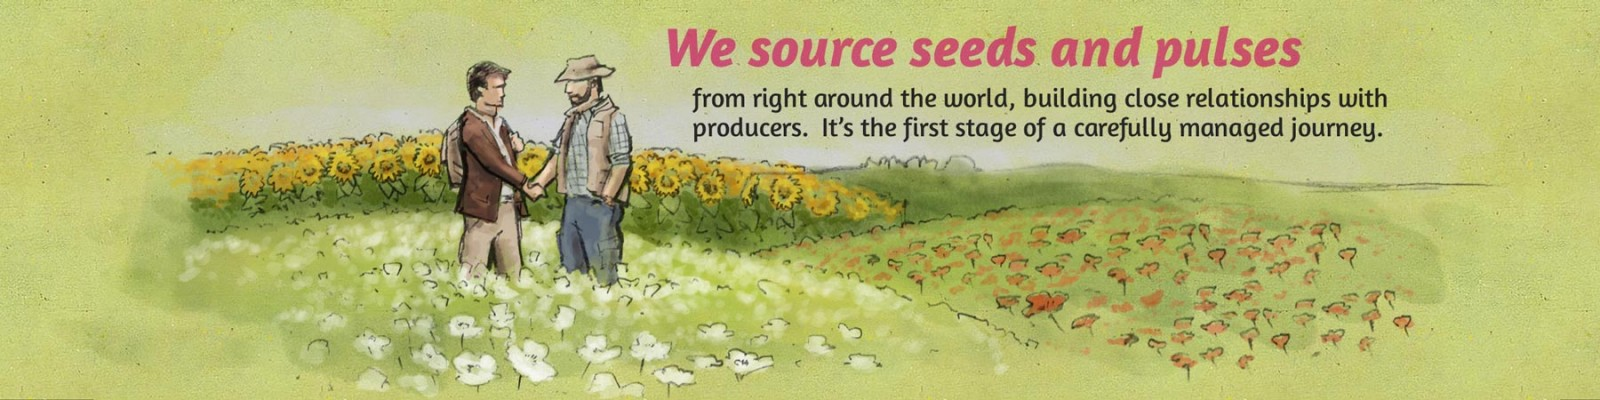 We source seeds and pulses